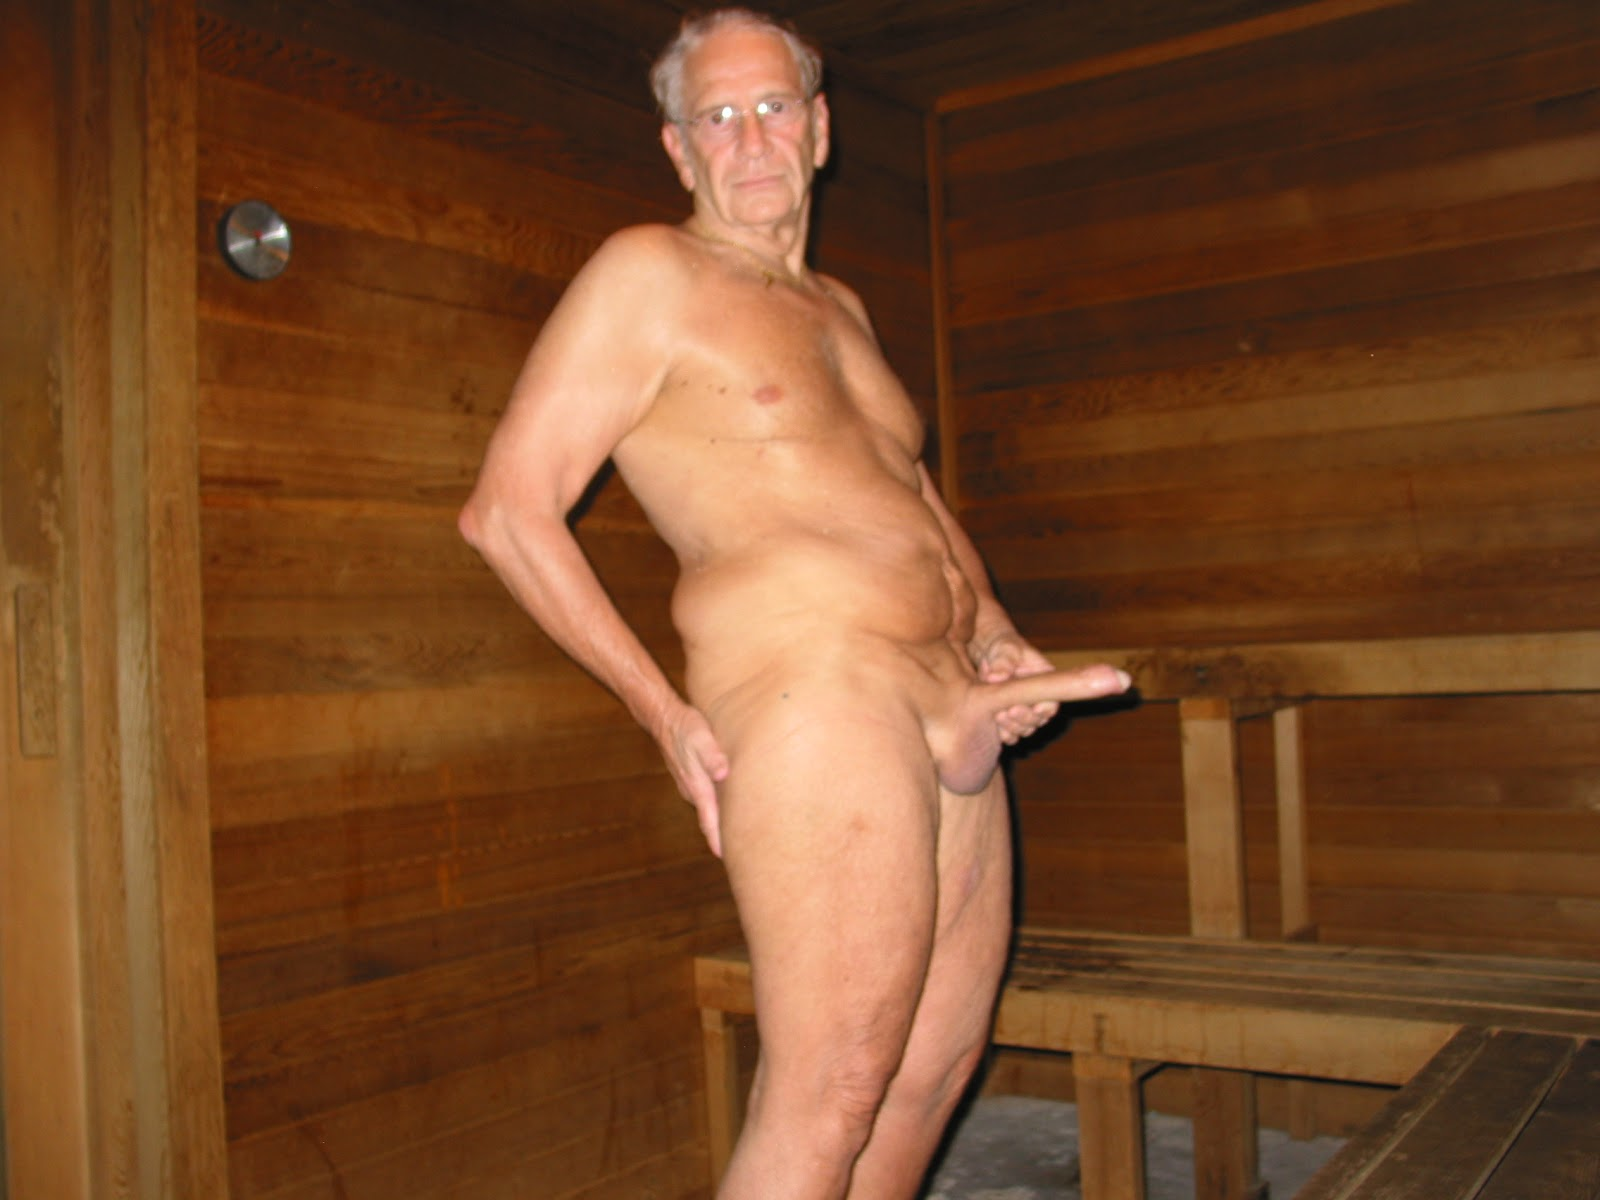 Recommend Men in saunas nude think, that